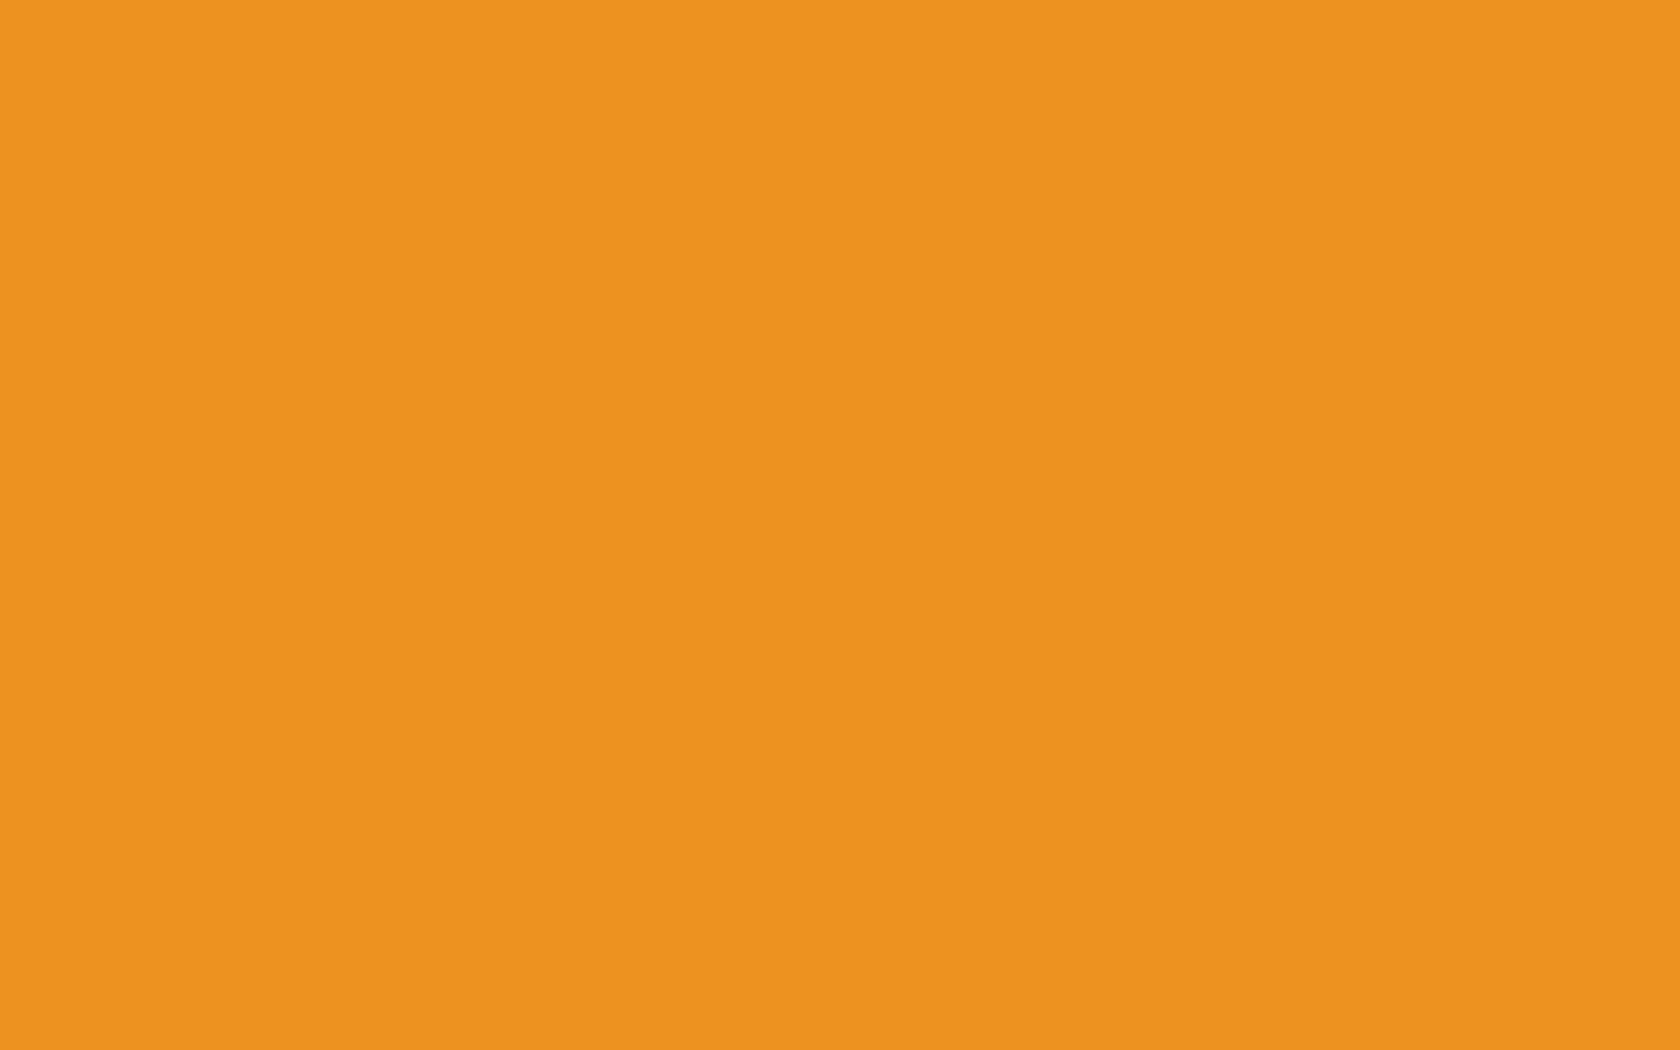 1680x1050 Carrot Orange Solid Color Background